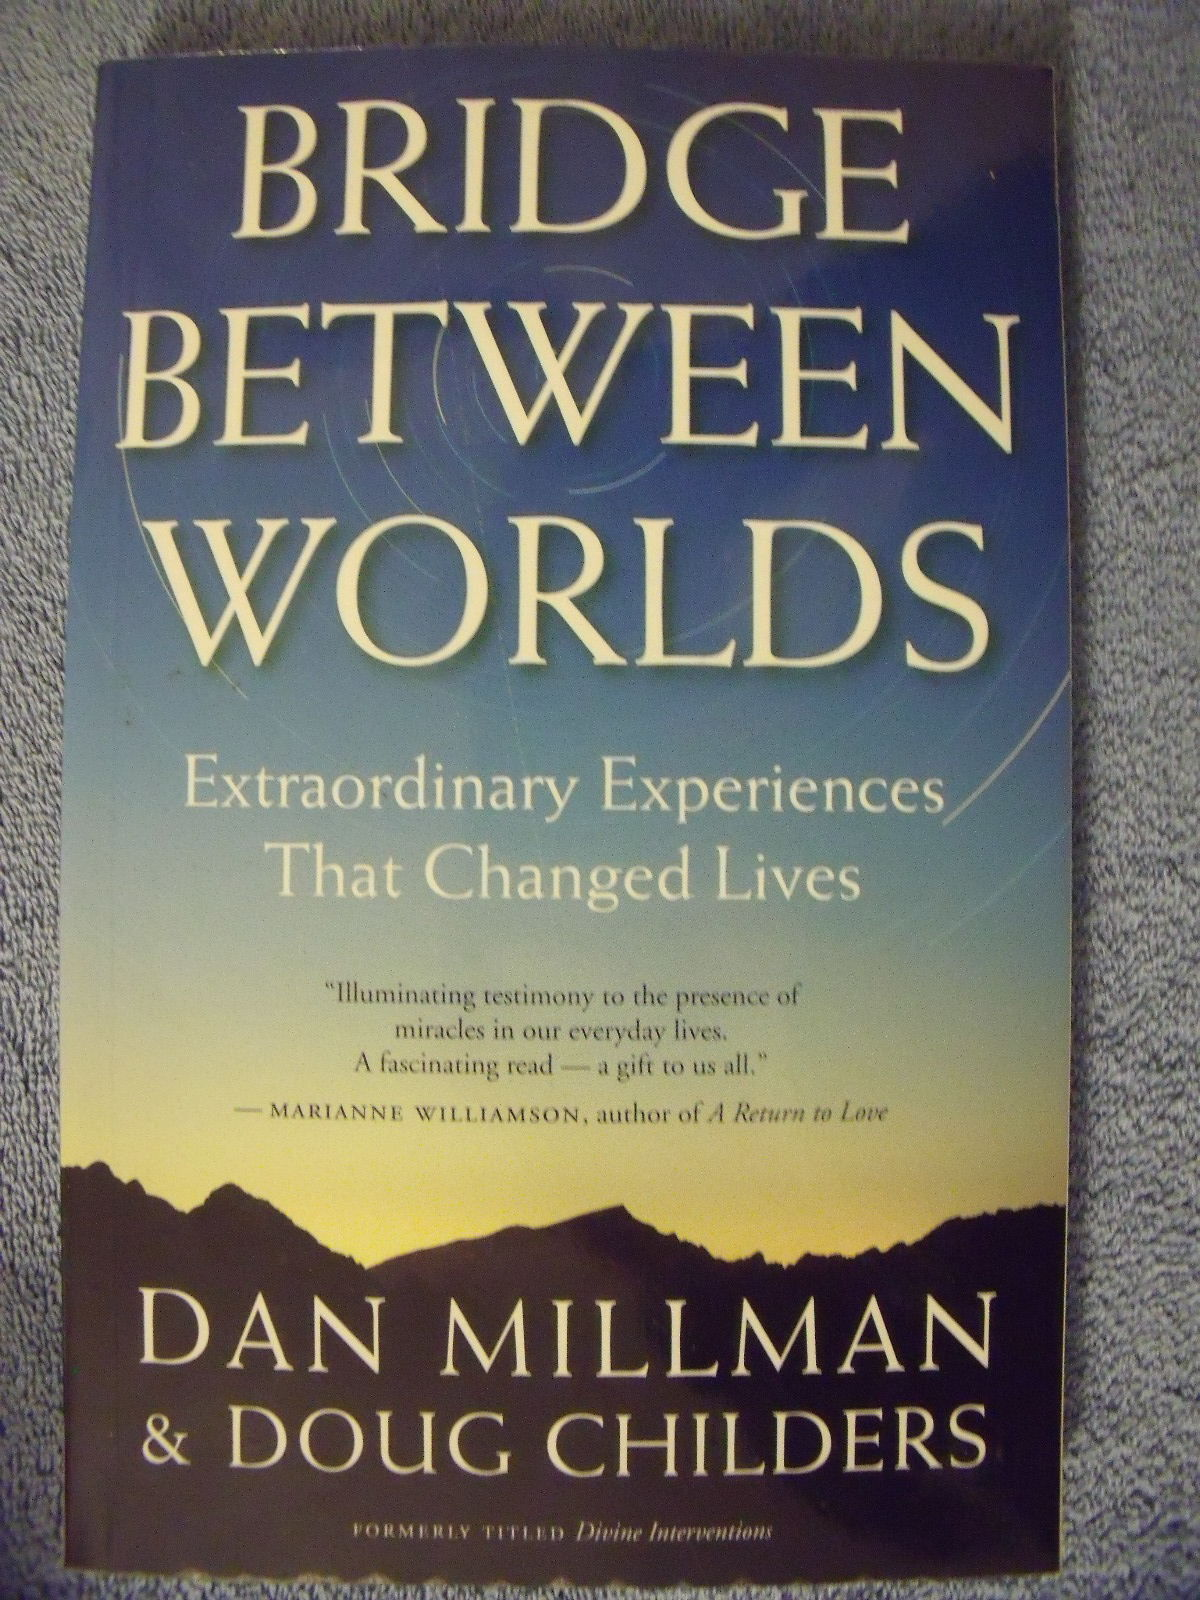 how the world changed between the World change spiritual healing for the world world change is a topic on the minds and in the hearts of many people at this time world events appear to be spiraling into ever greater manifestations of negativity, and many who hope to change the world with more positive actions and intentions are frustrated by the apparent lack of effect of their good works.